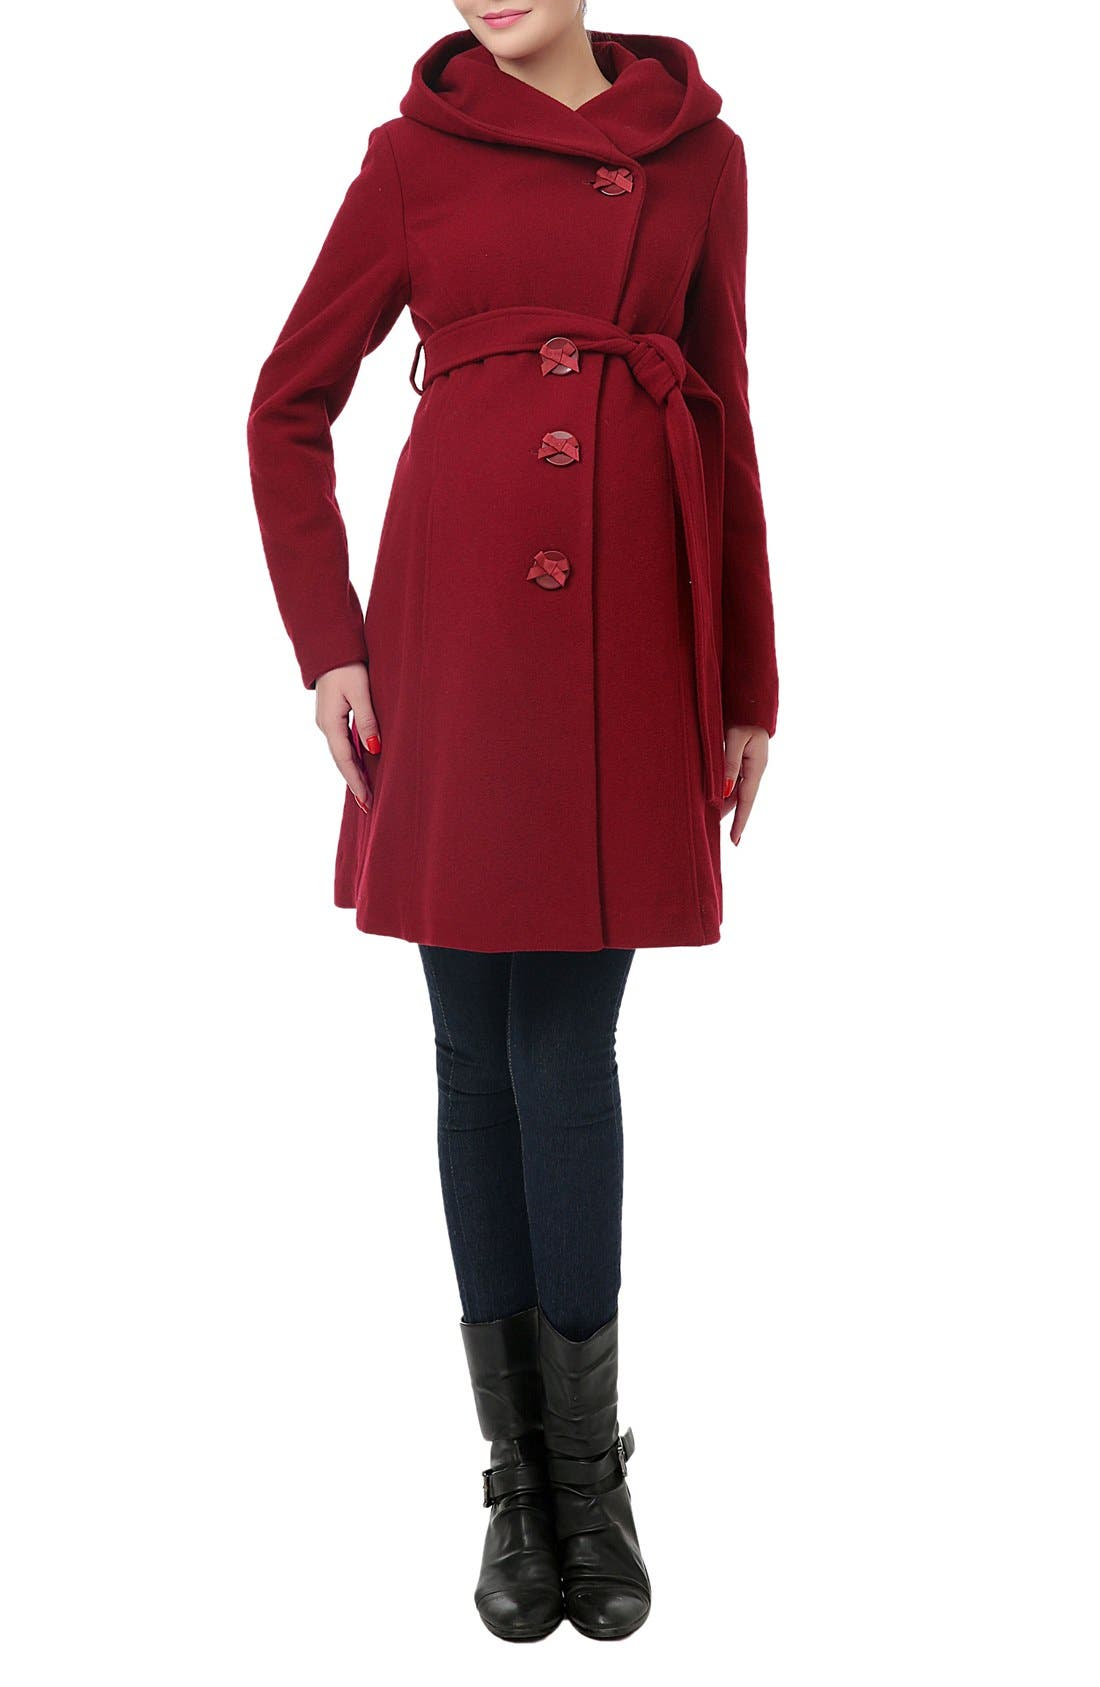 KIMI AND KAI 'Lora' Wool Blend Maternity Coat